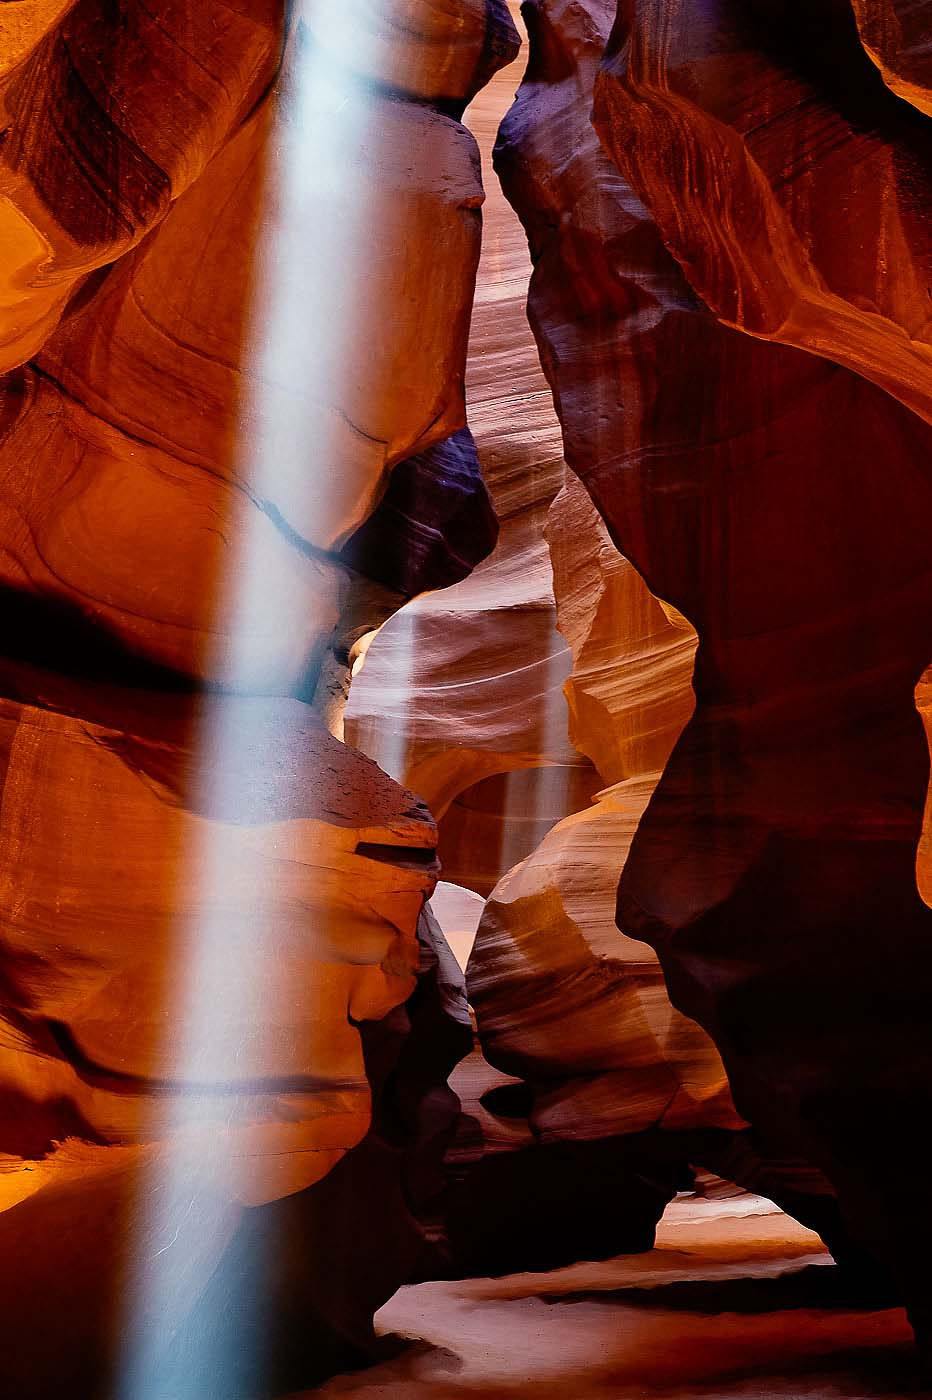 Light-Ray-Antelope-Canyon-Page-Arizona-USA-Landscape